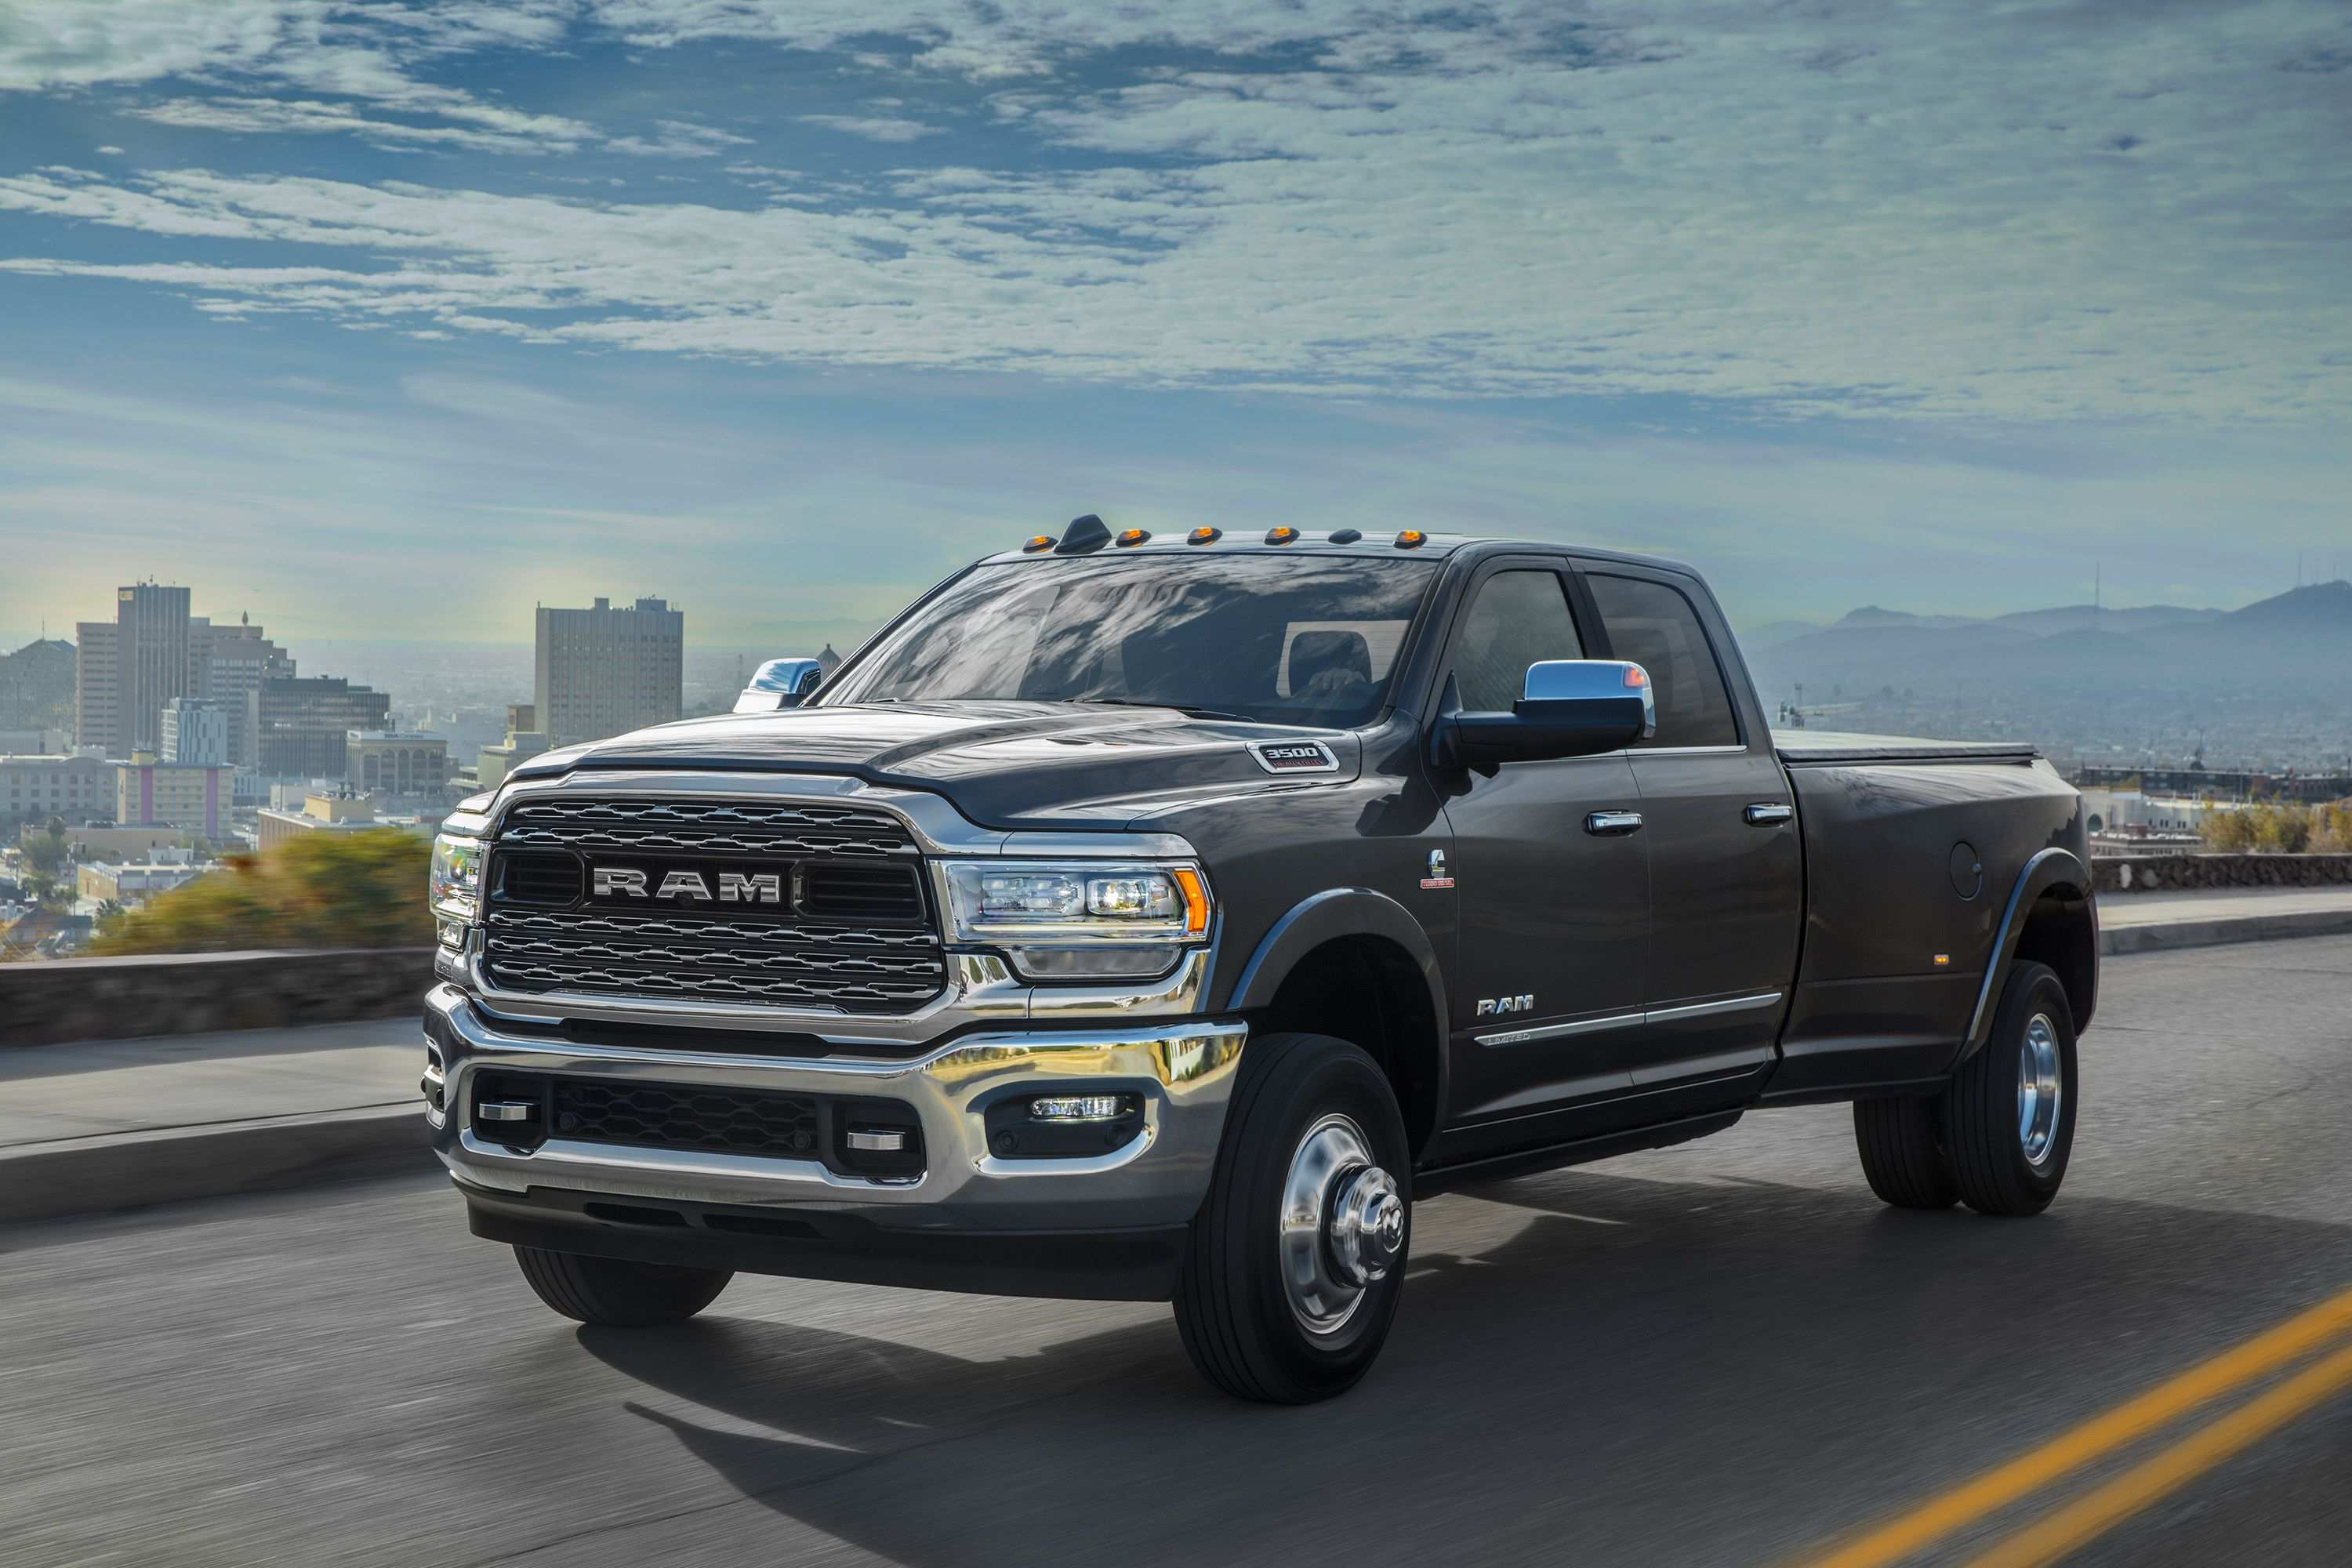 24 Great 2020 Ram 3500 Picture for 2020 Ram 3500